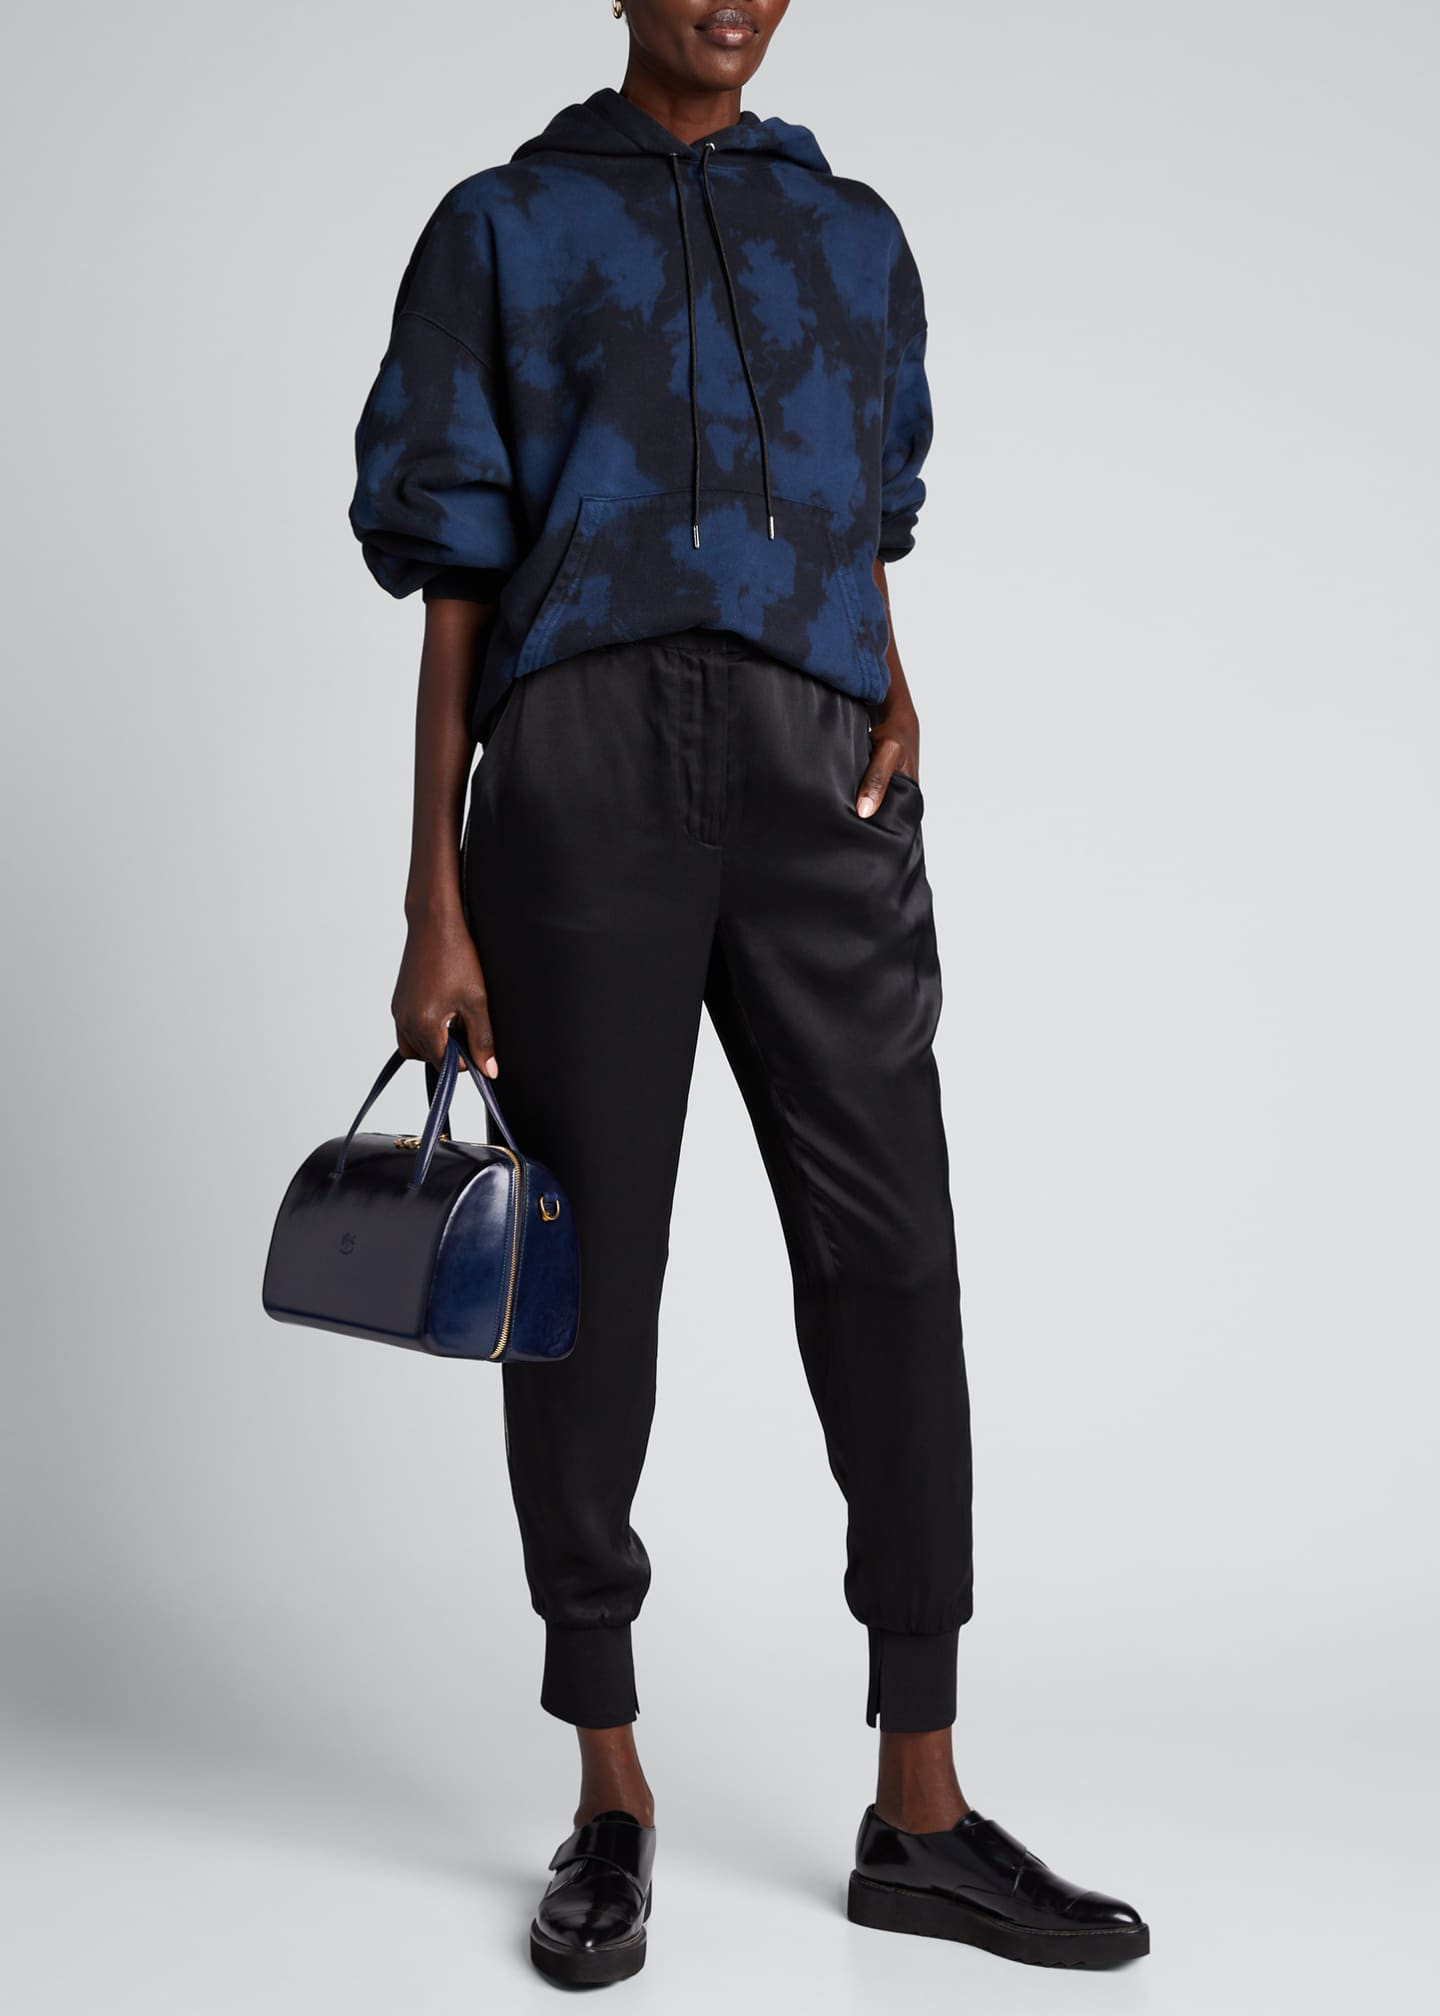 3.1 Phillip Lim Satin Jogger Pants with Ribbed